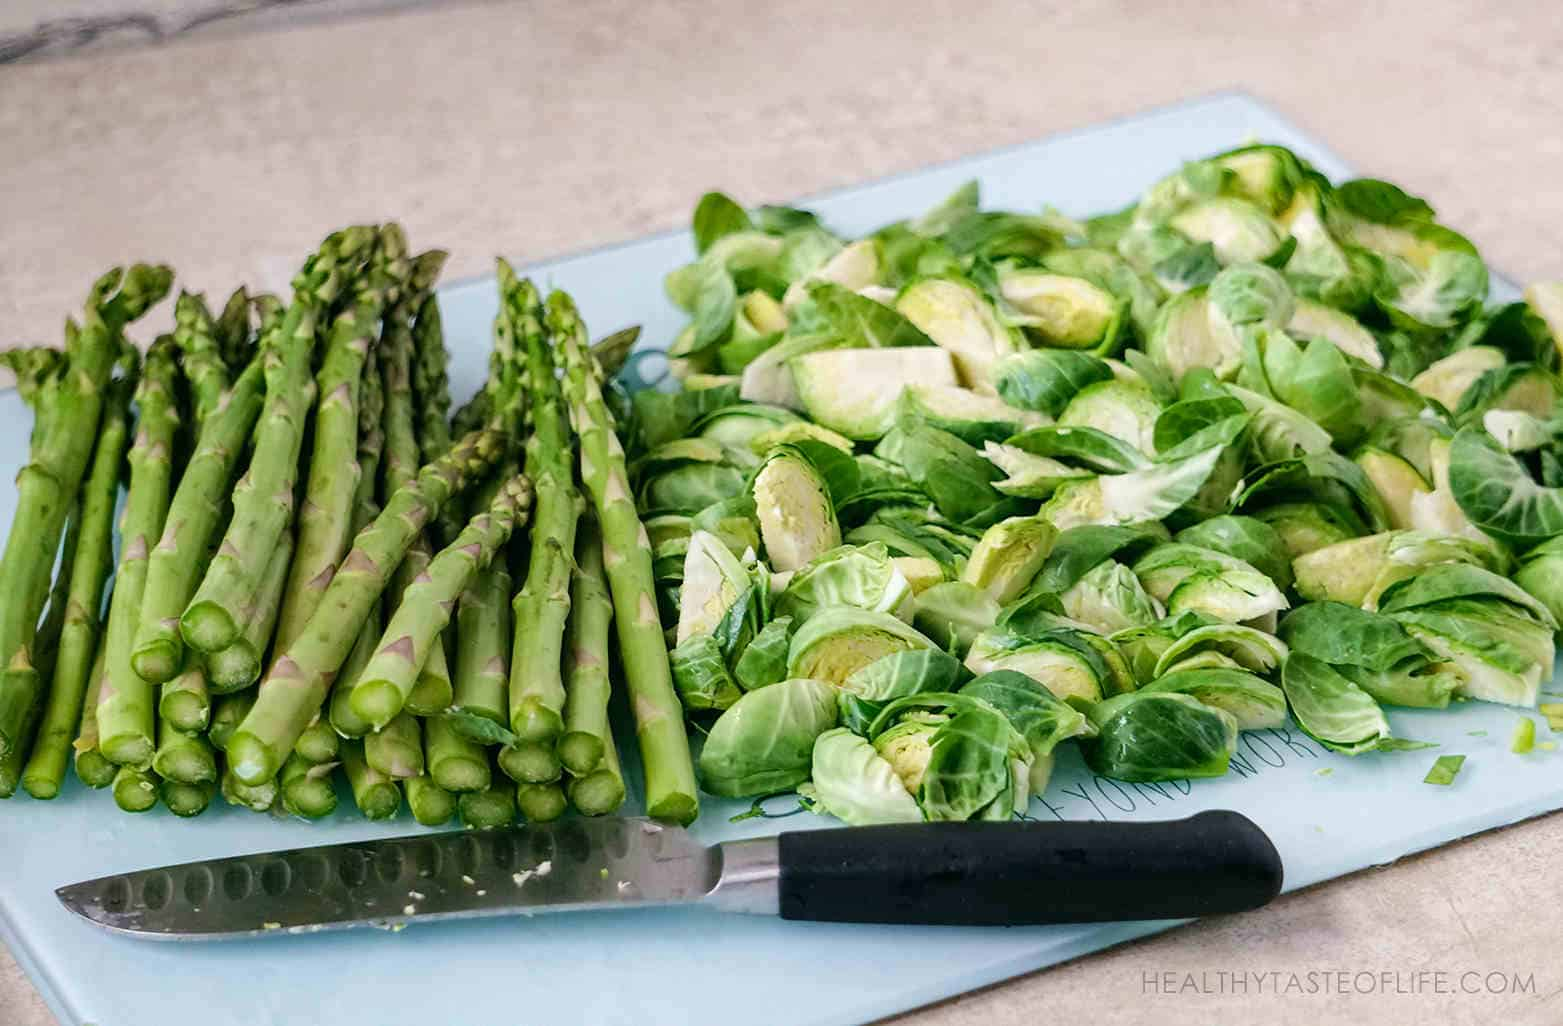 Chopped quartered brussels sprouts and asparagus prepared for roasting